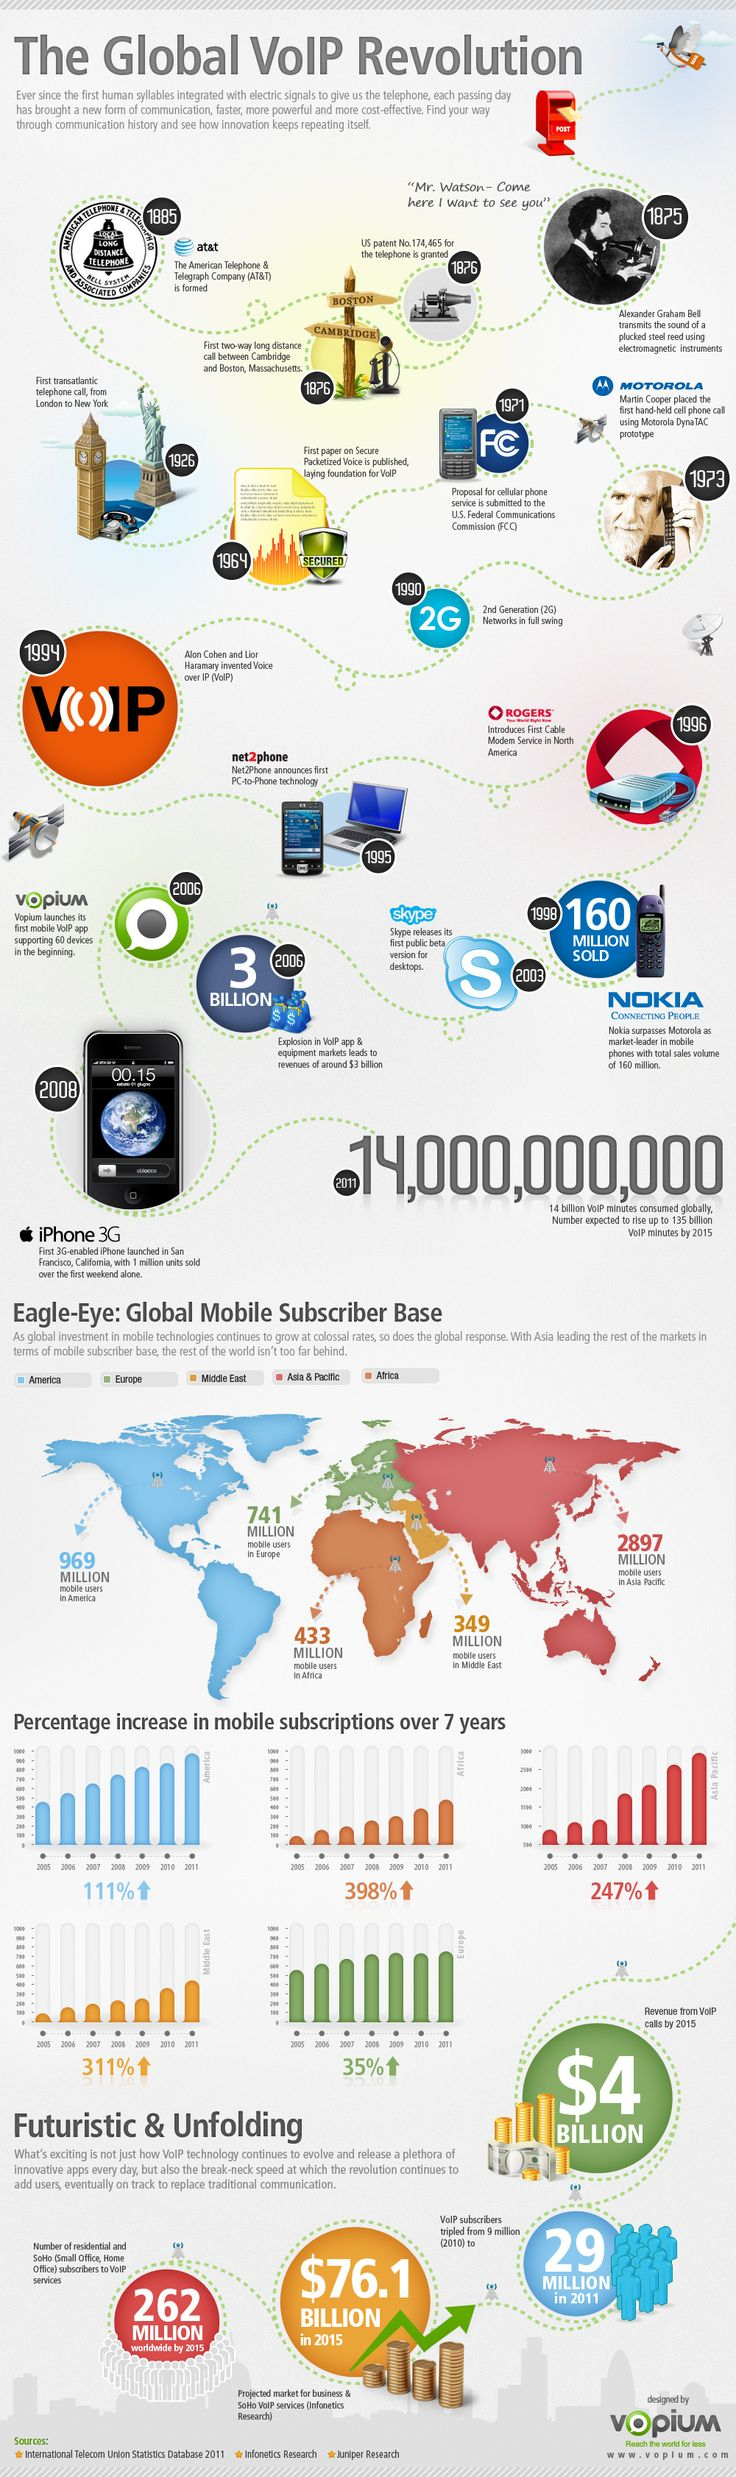 8 best phone images on pinterest phone business and cloud based infographic the history of telephony and the revolution of voip fandeluxe